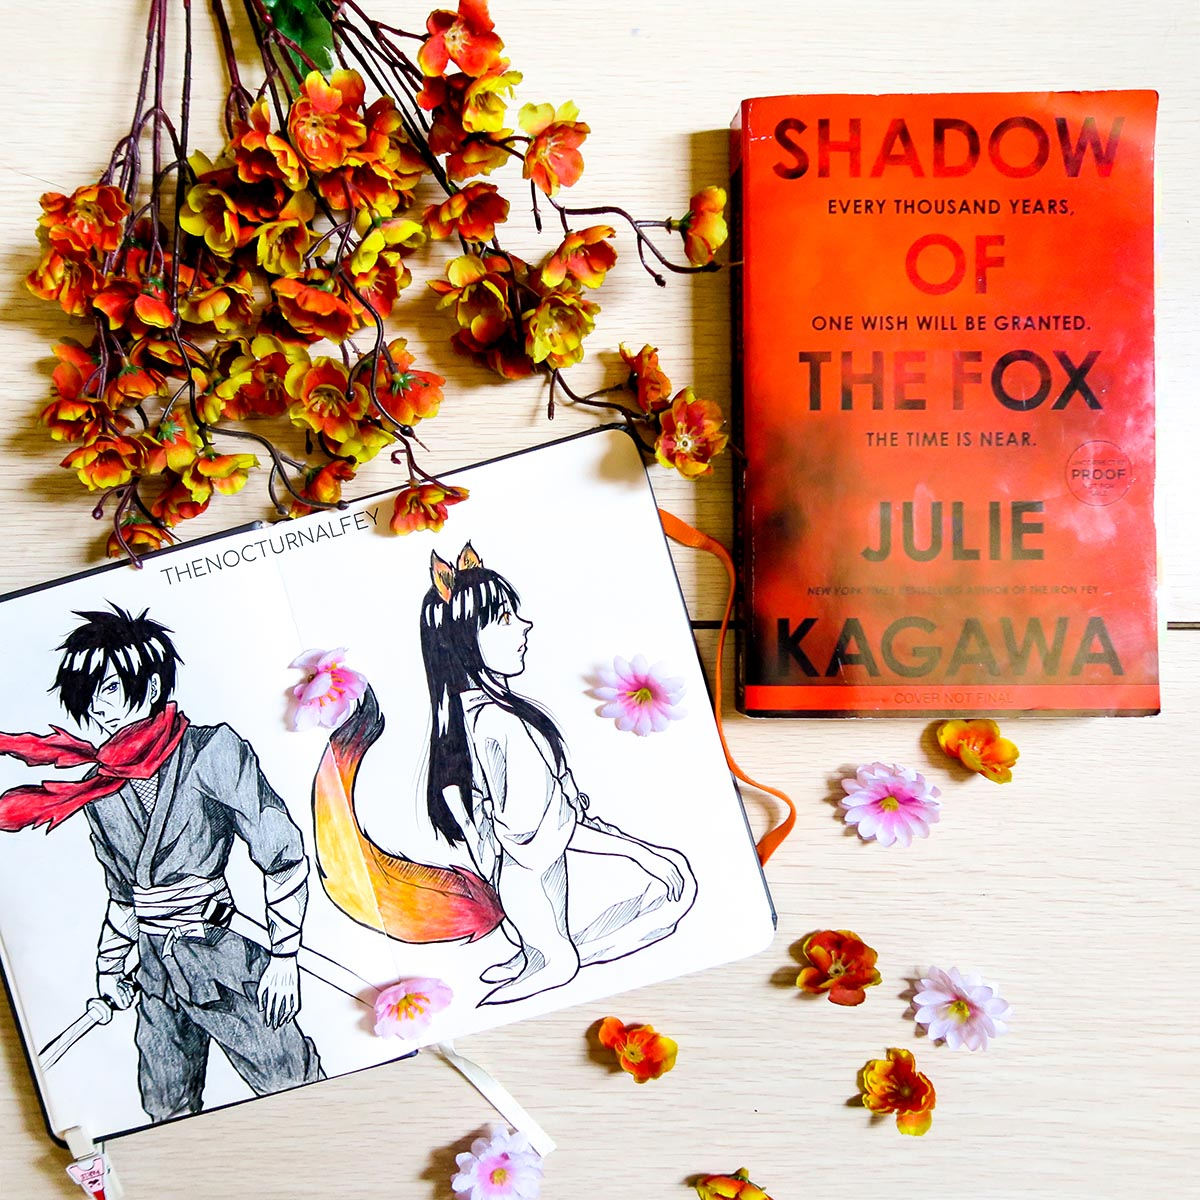 shadow of the fox the nocturnal fey julie kagawa